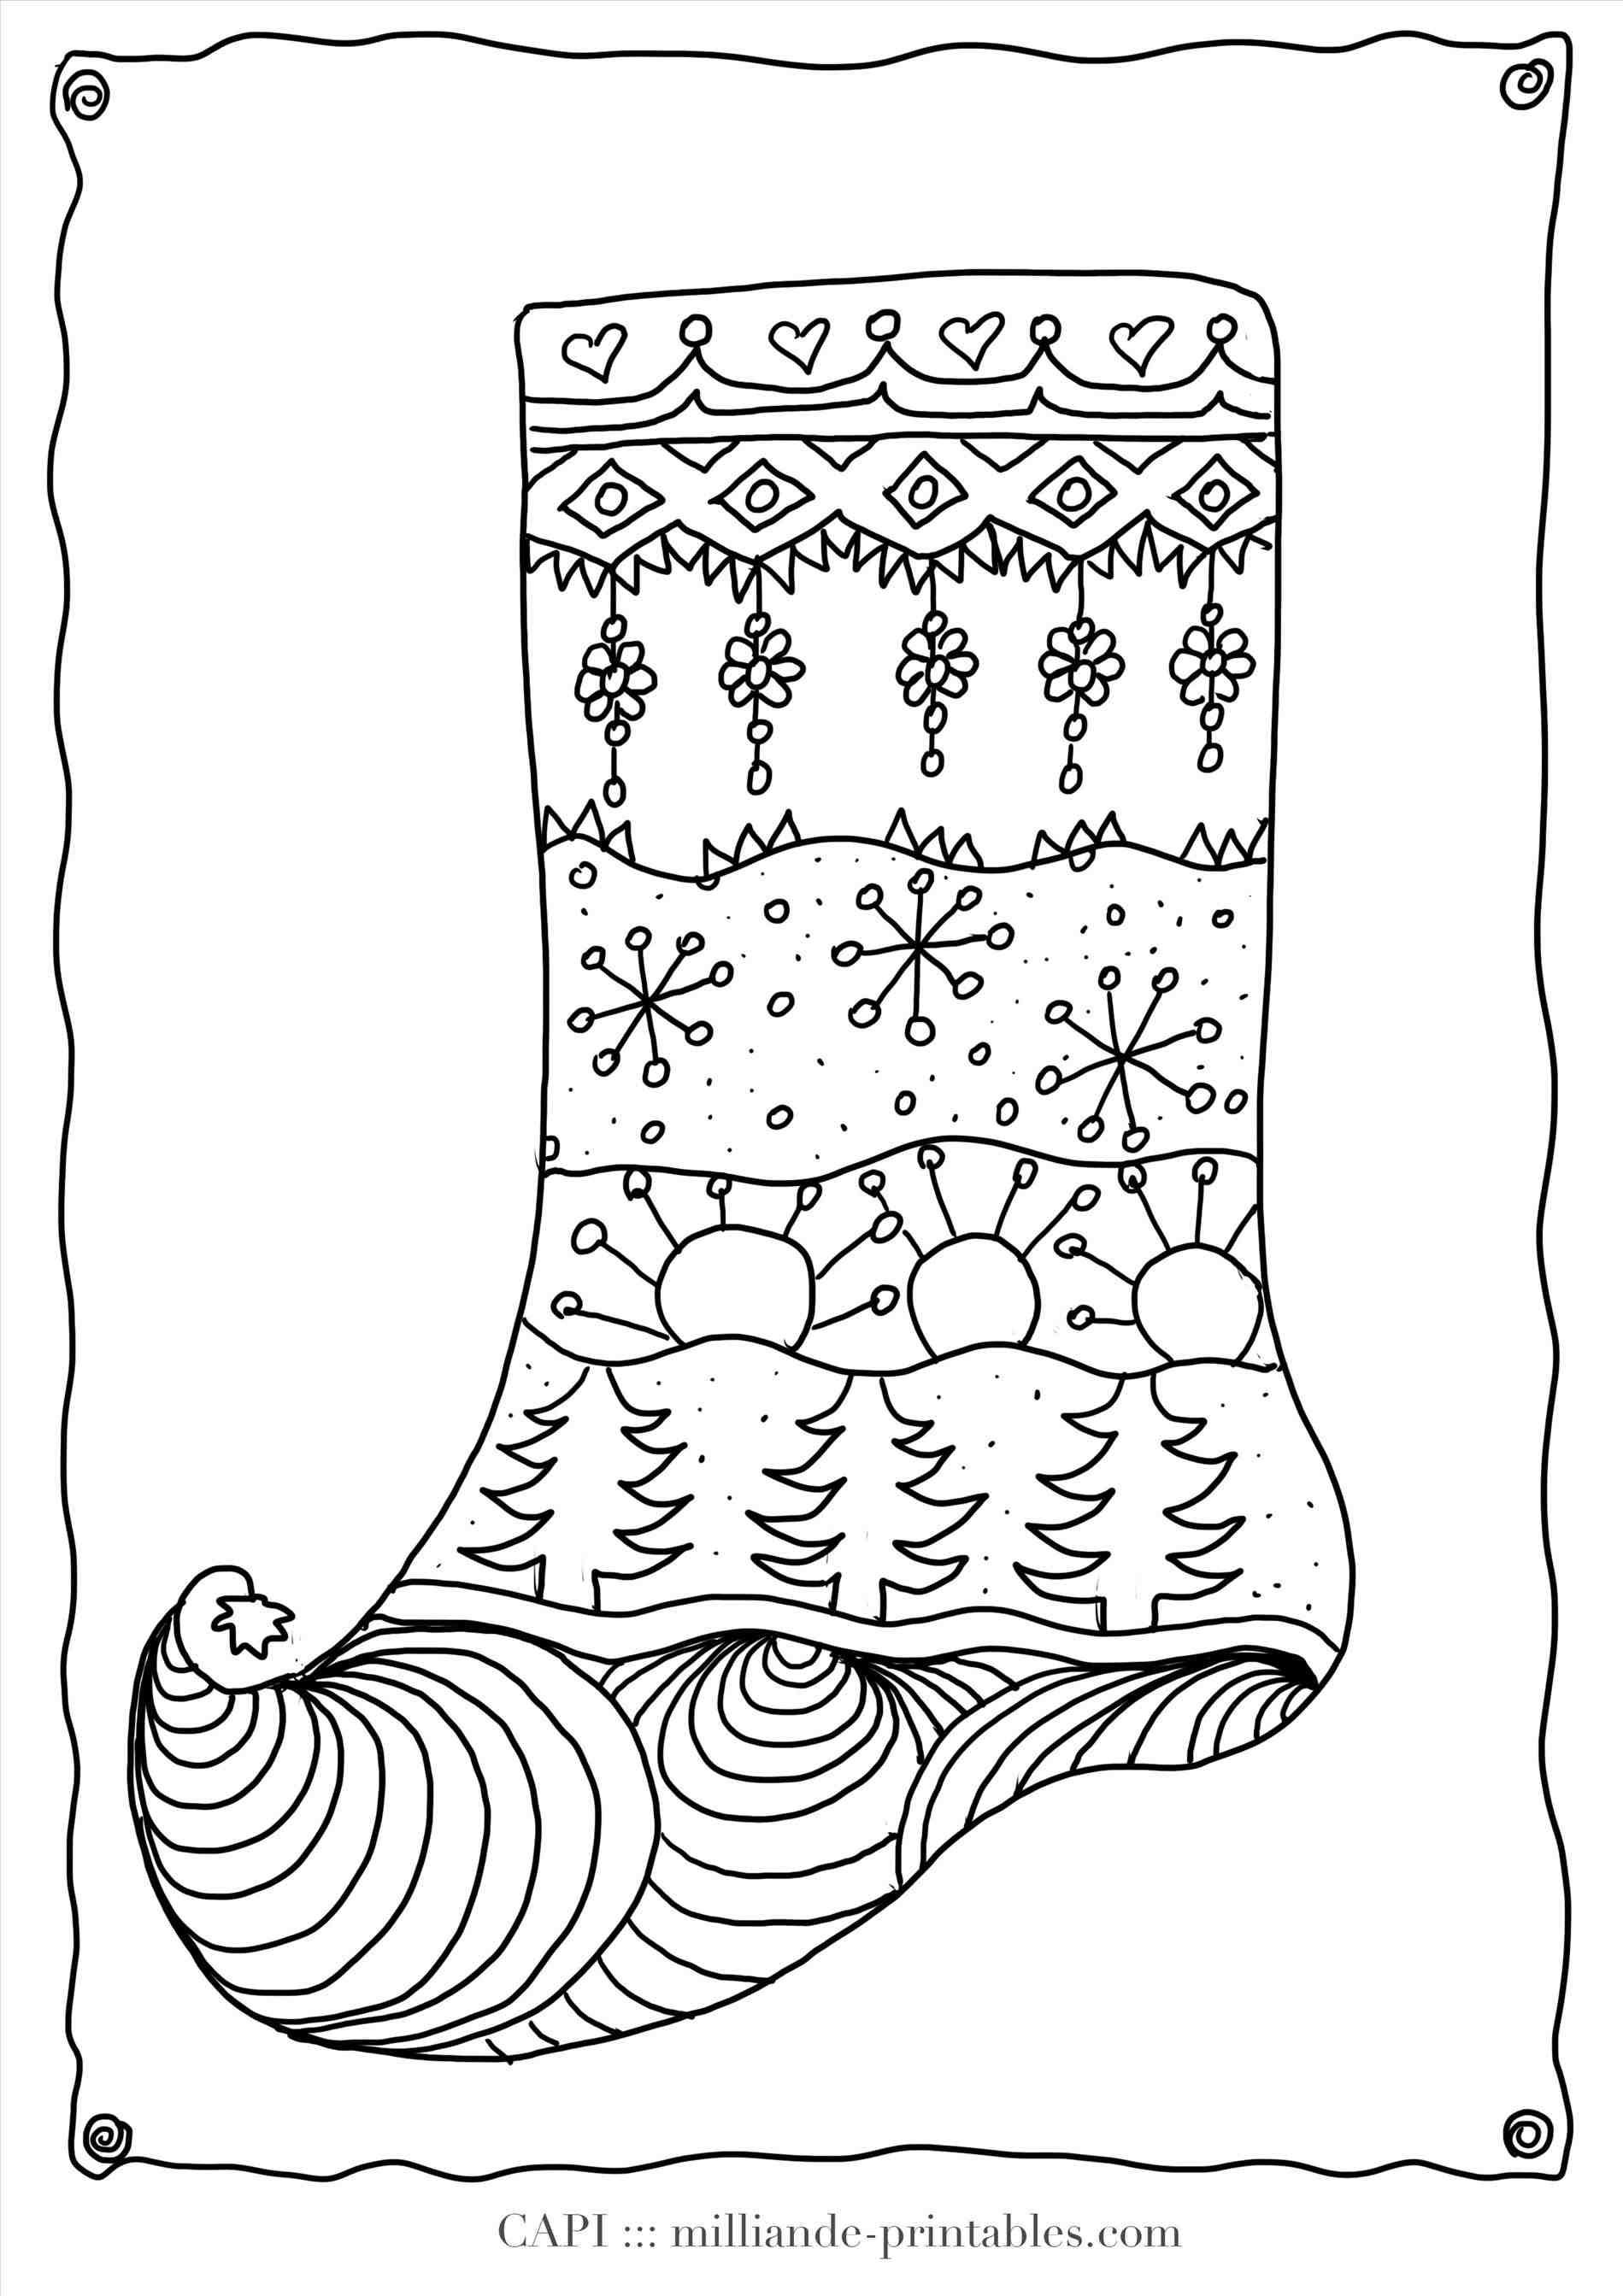 Christmas Stocking Coloring Pages For Adults With New Post Sheets Trendingcheminee Info